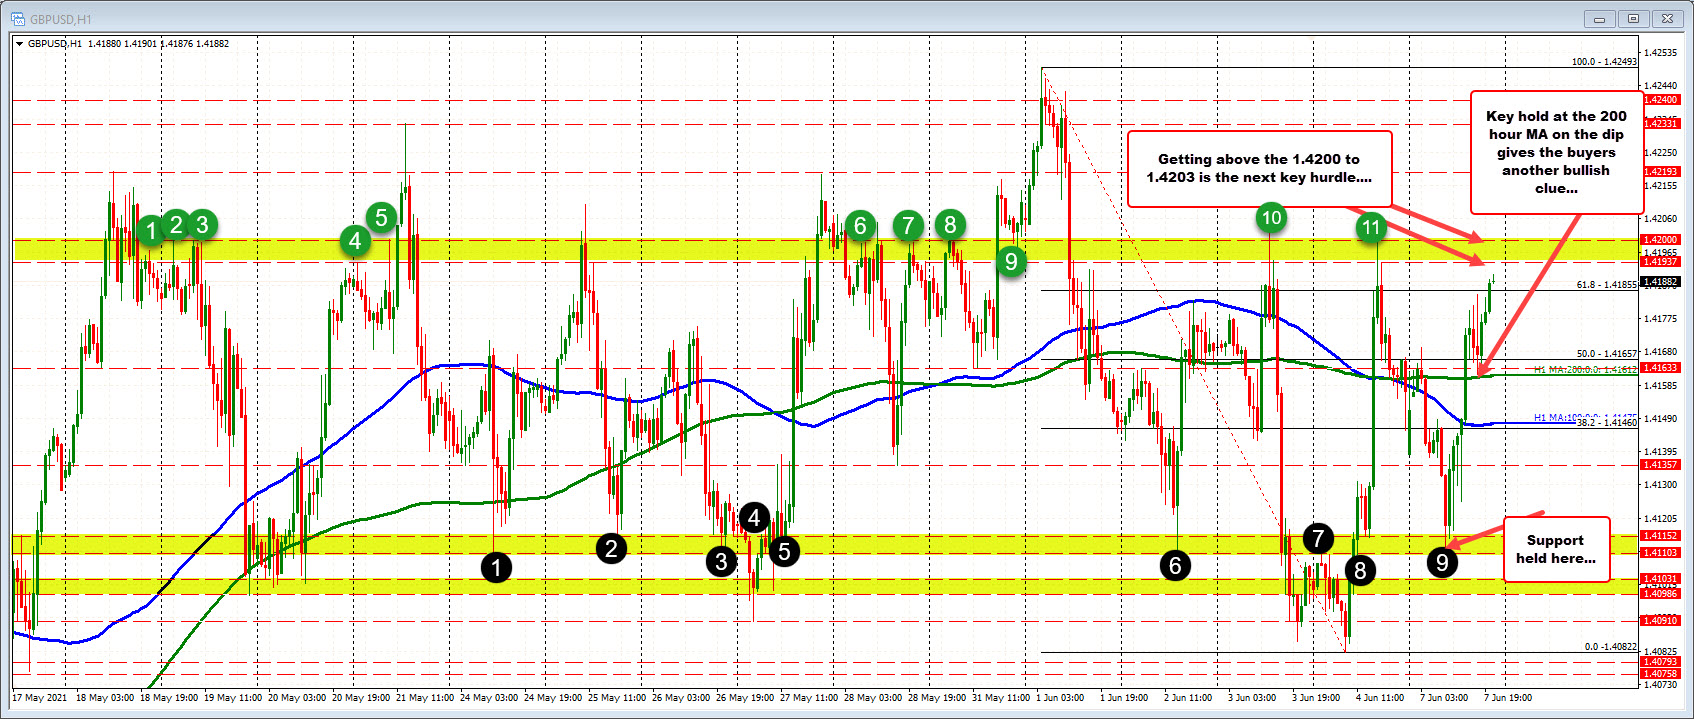 Price moves back higher after test of 200 hour MA, stalled intraday correction